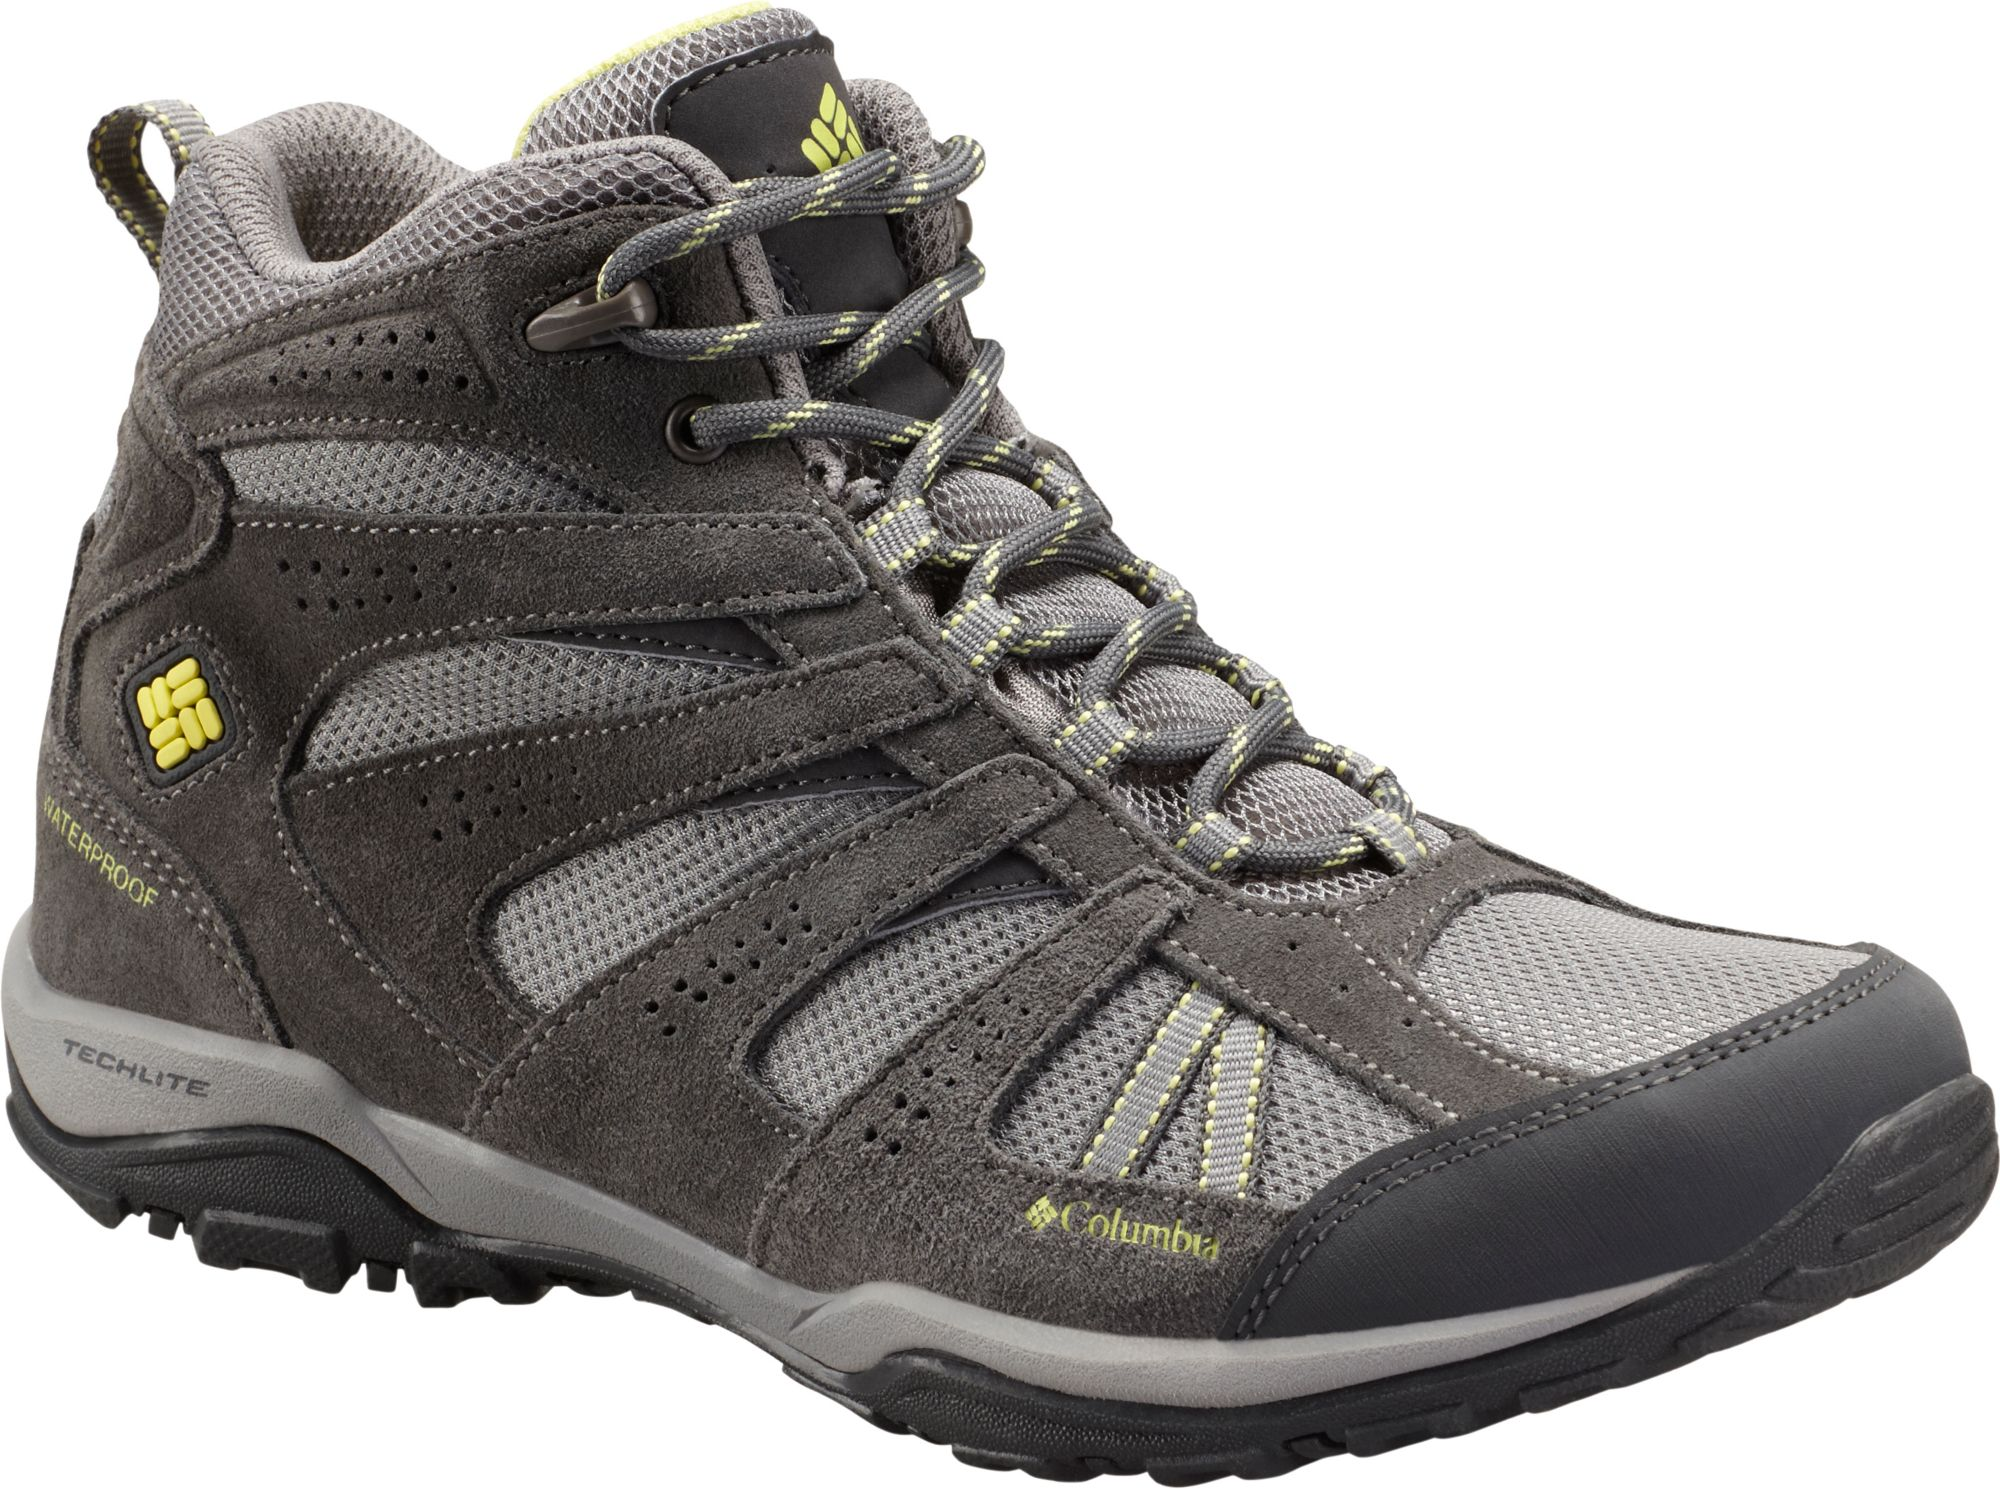 How to select the best women hiking boots for you